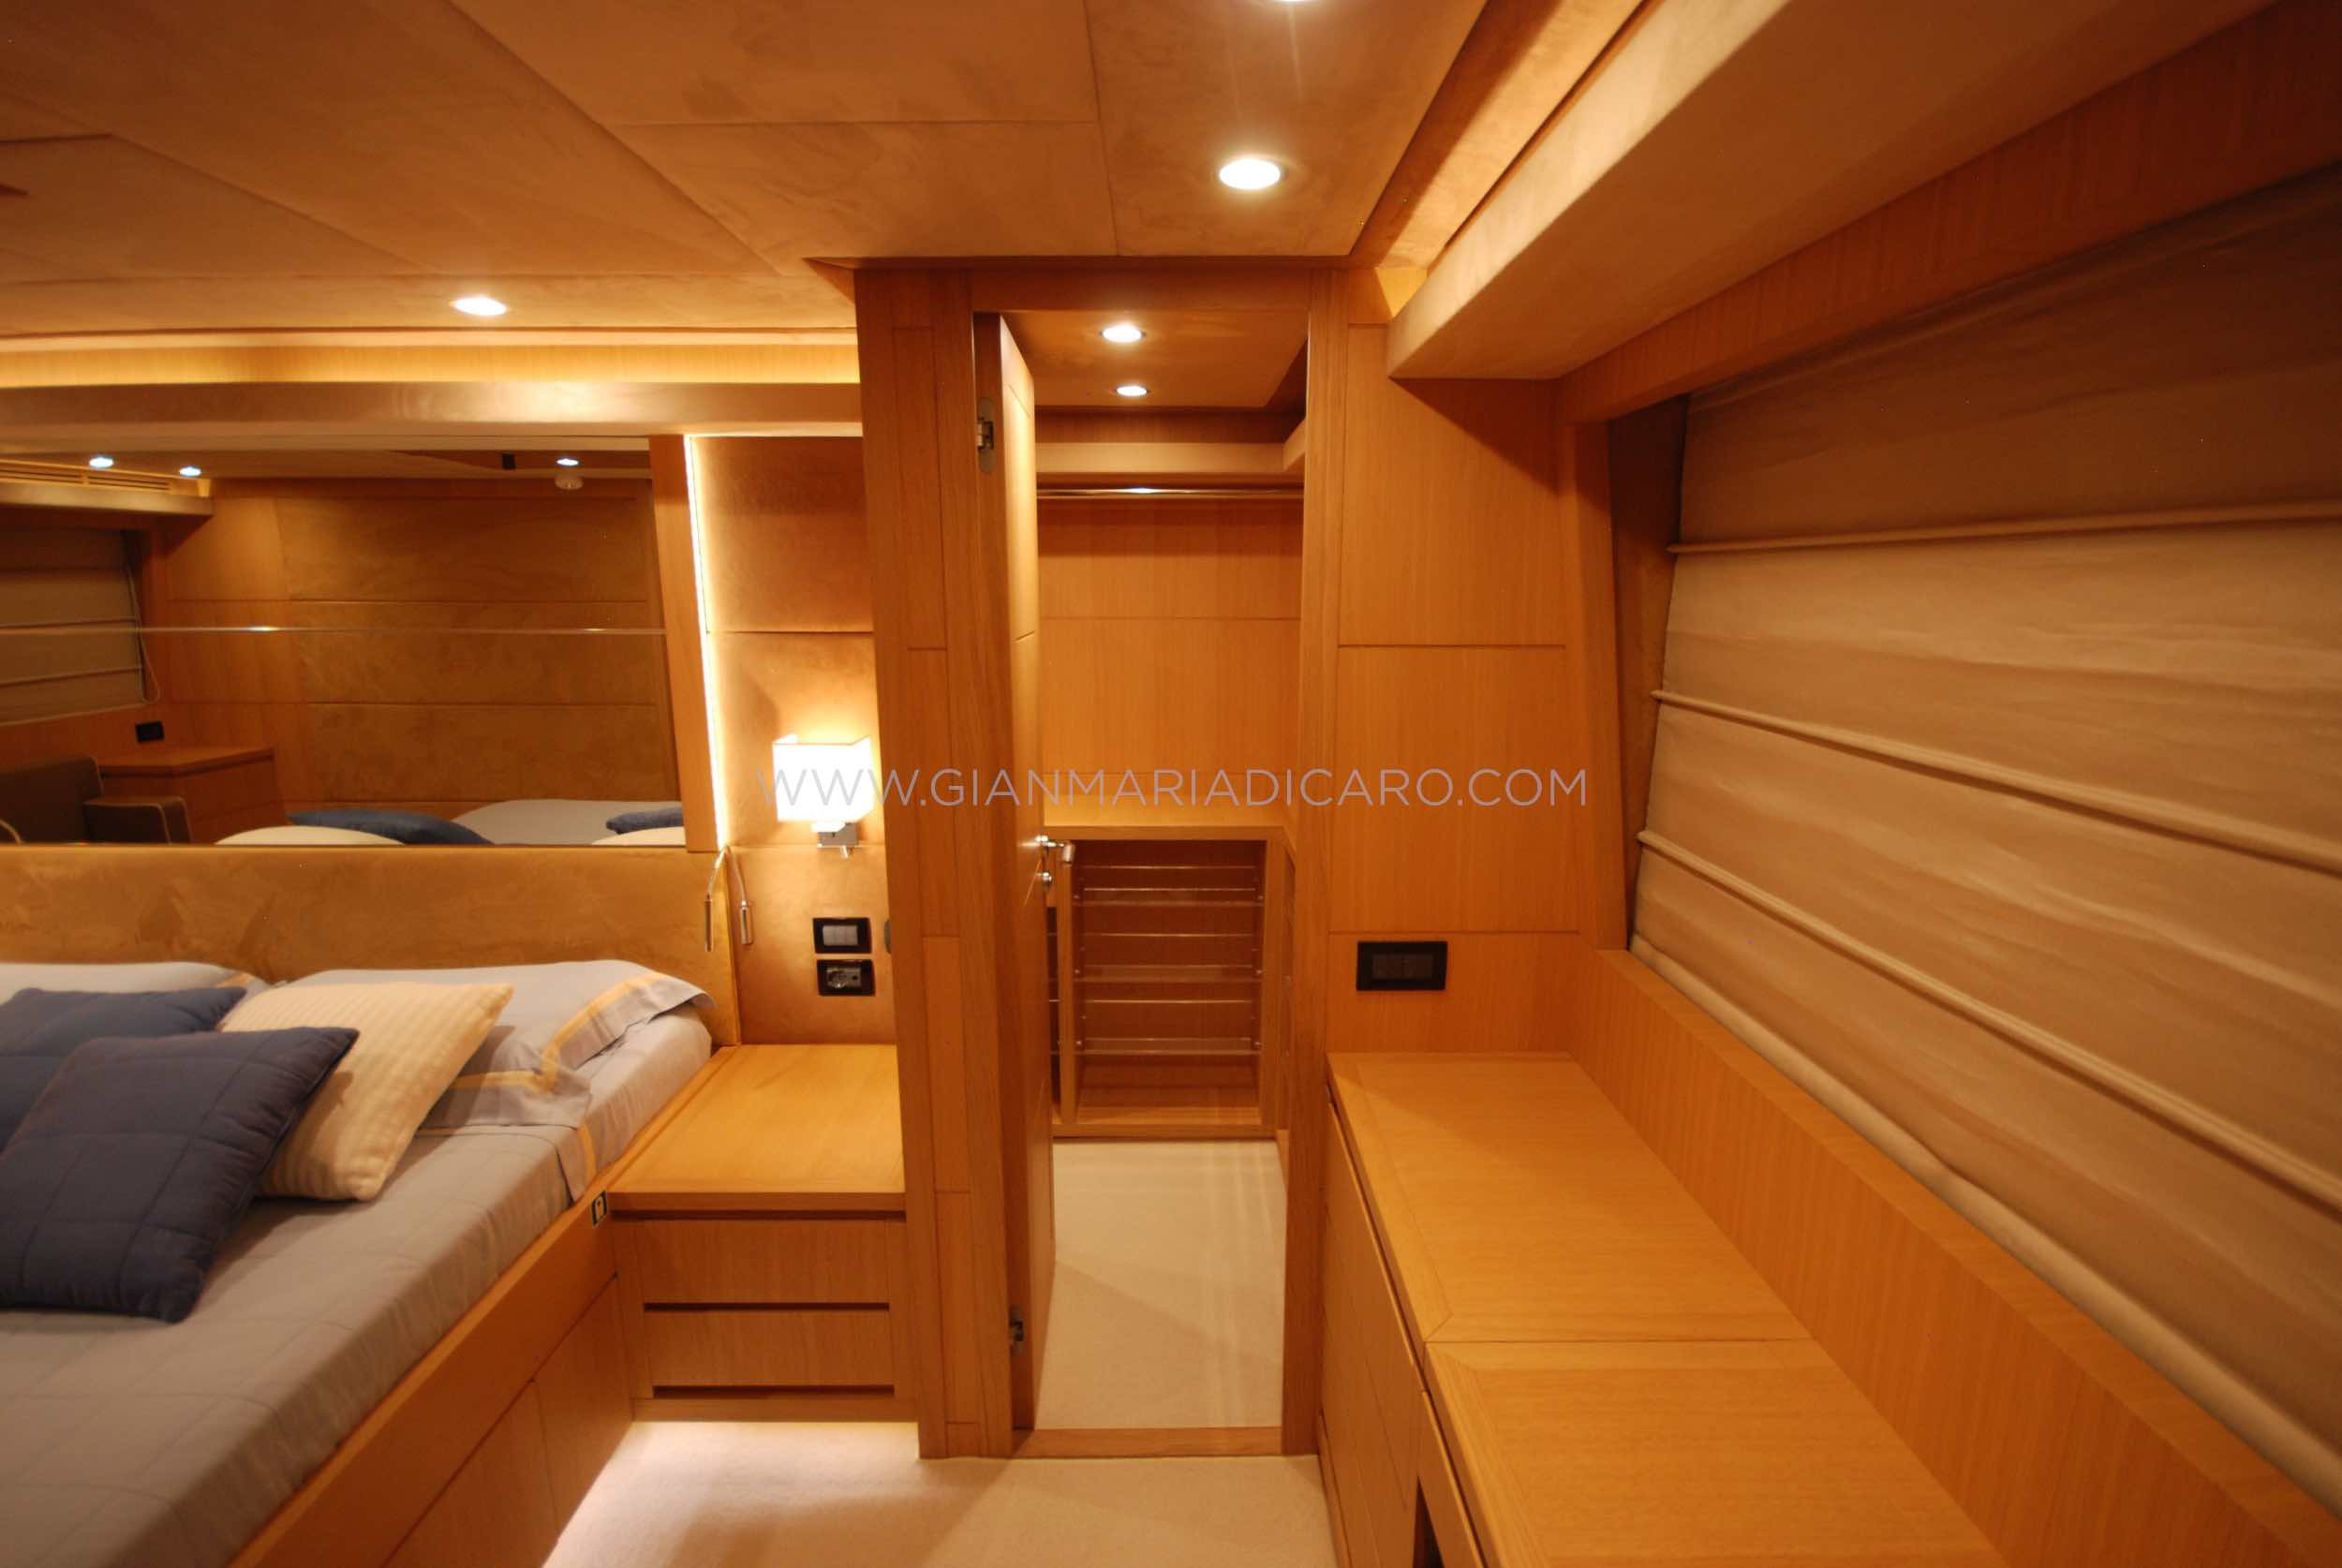 emys-yacht-22-unica-for-sale-223.jpg